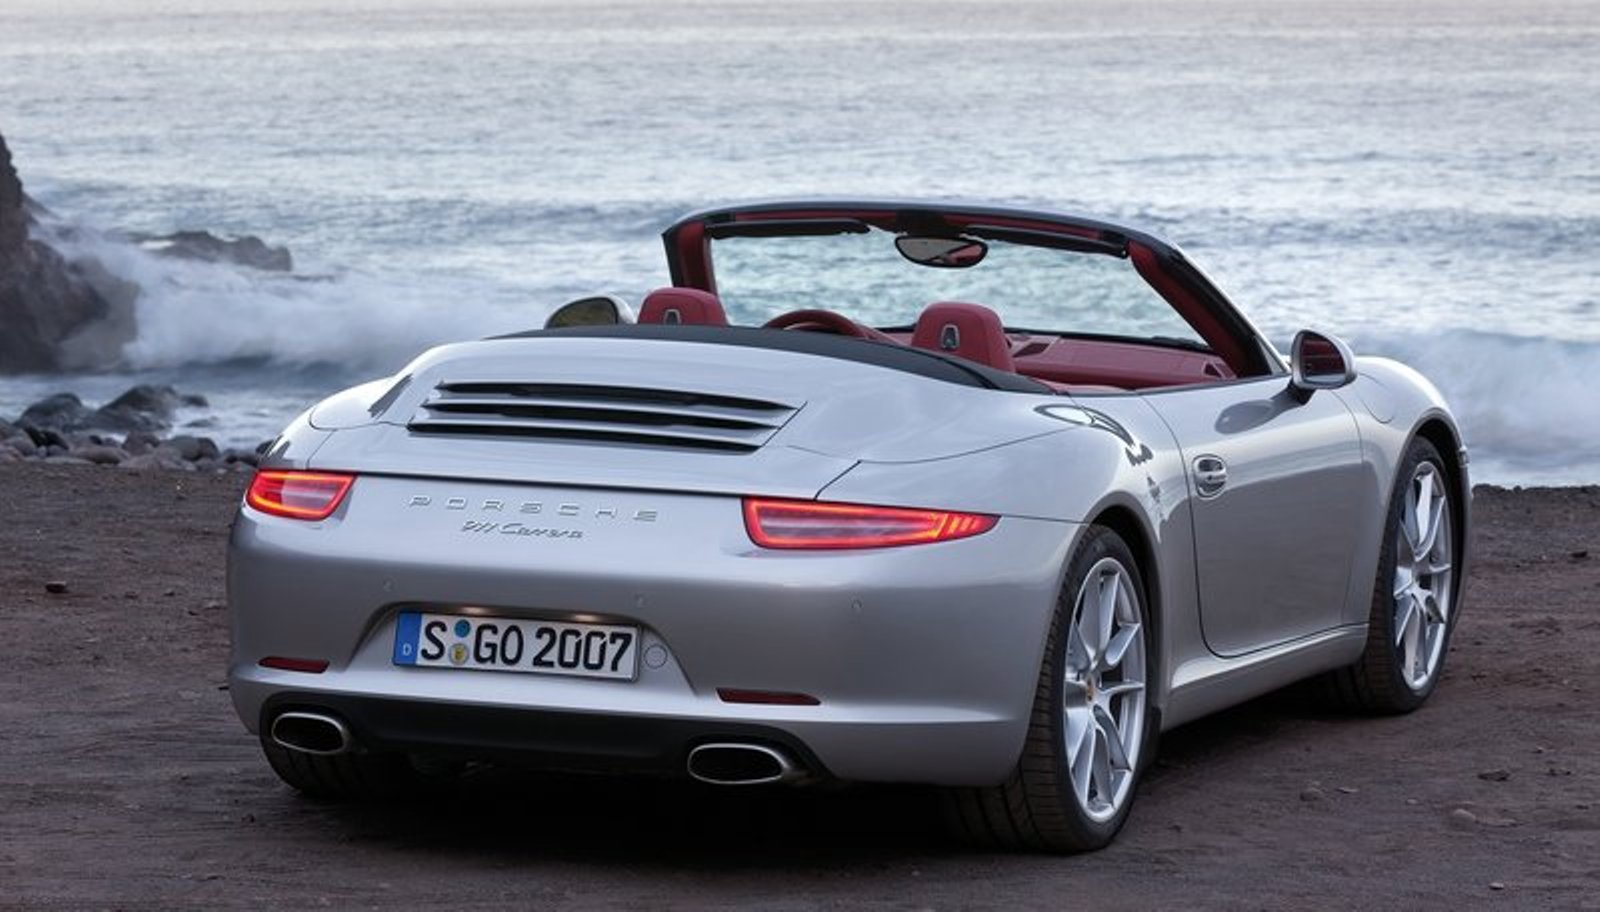 2013 porsche 911 carrera cabriolet review and pictures. Black Bedroom Furniture Sets. Home Design Ideas